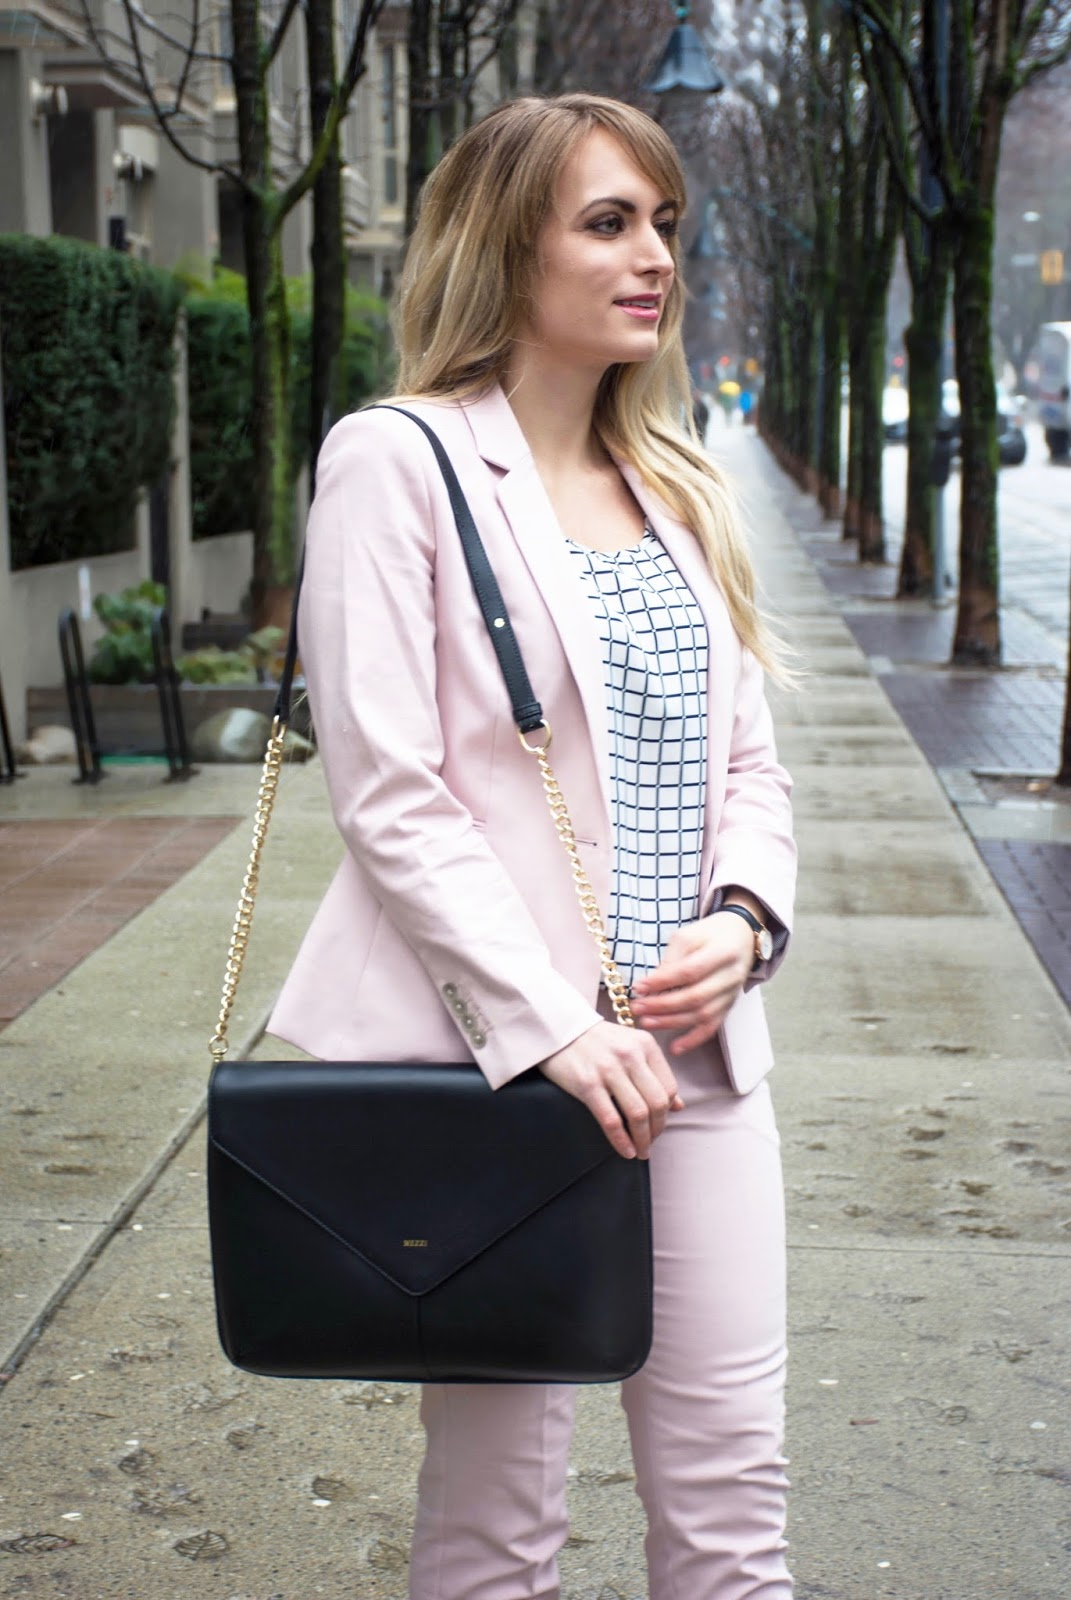 fashion blogger pink suit